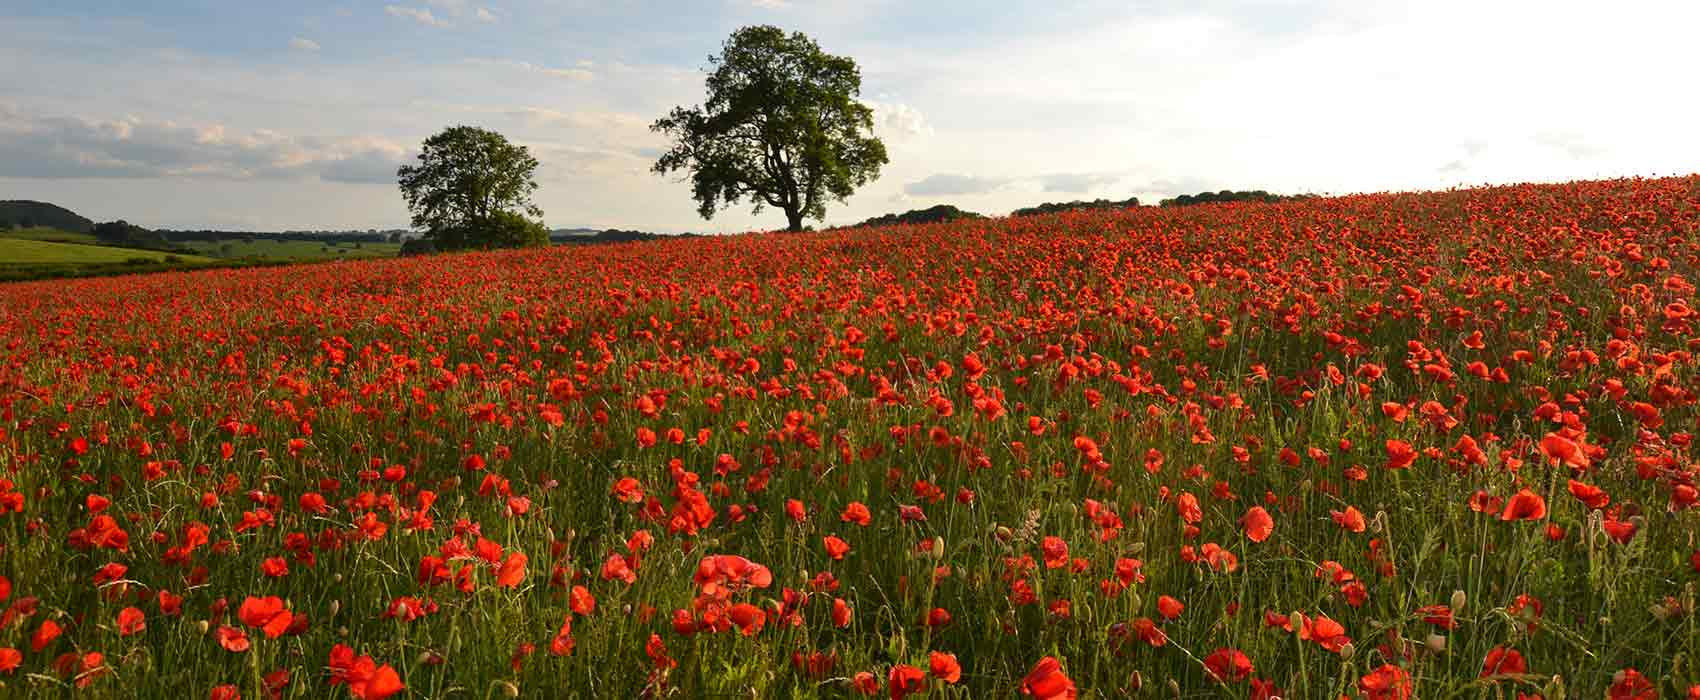 Field-of-poppies-Baslow-towards-Chatsworth